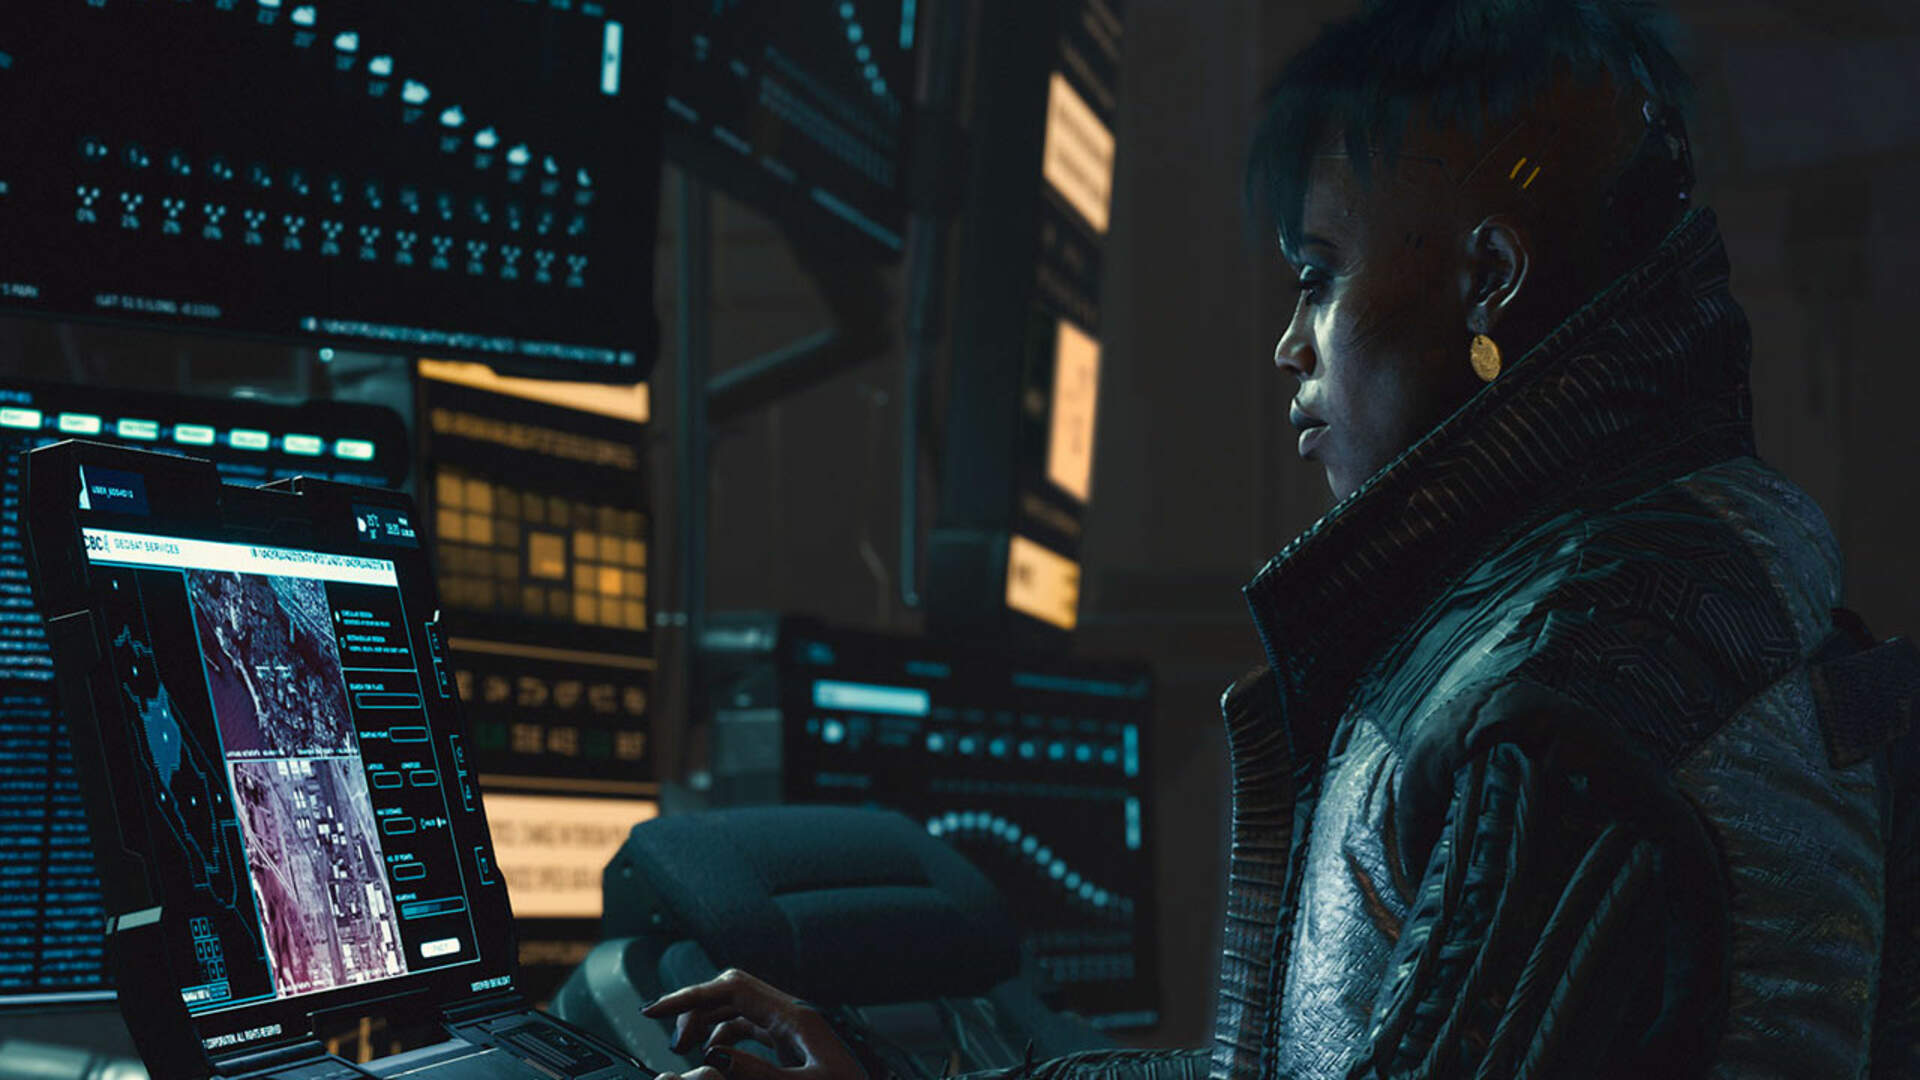 Cyberpunk 2077 Will Let Players Choose Their Body Type and Voice Individually